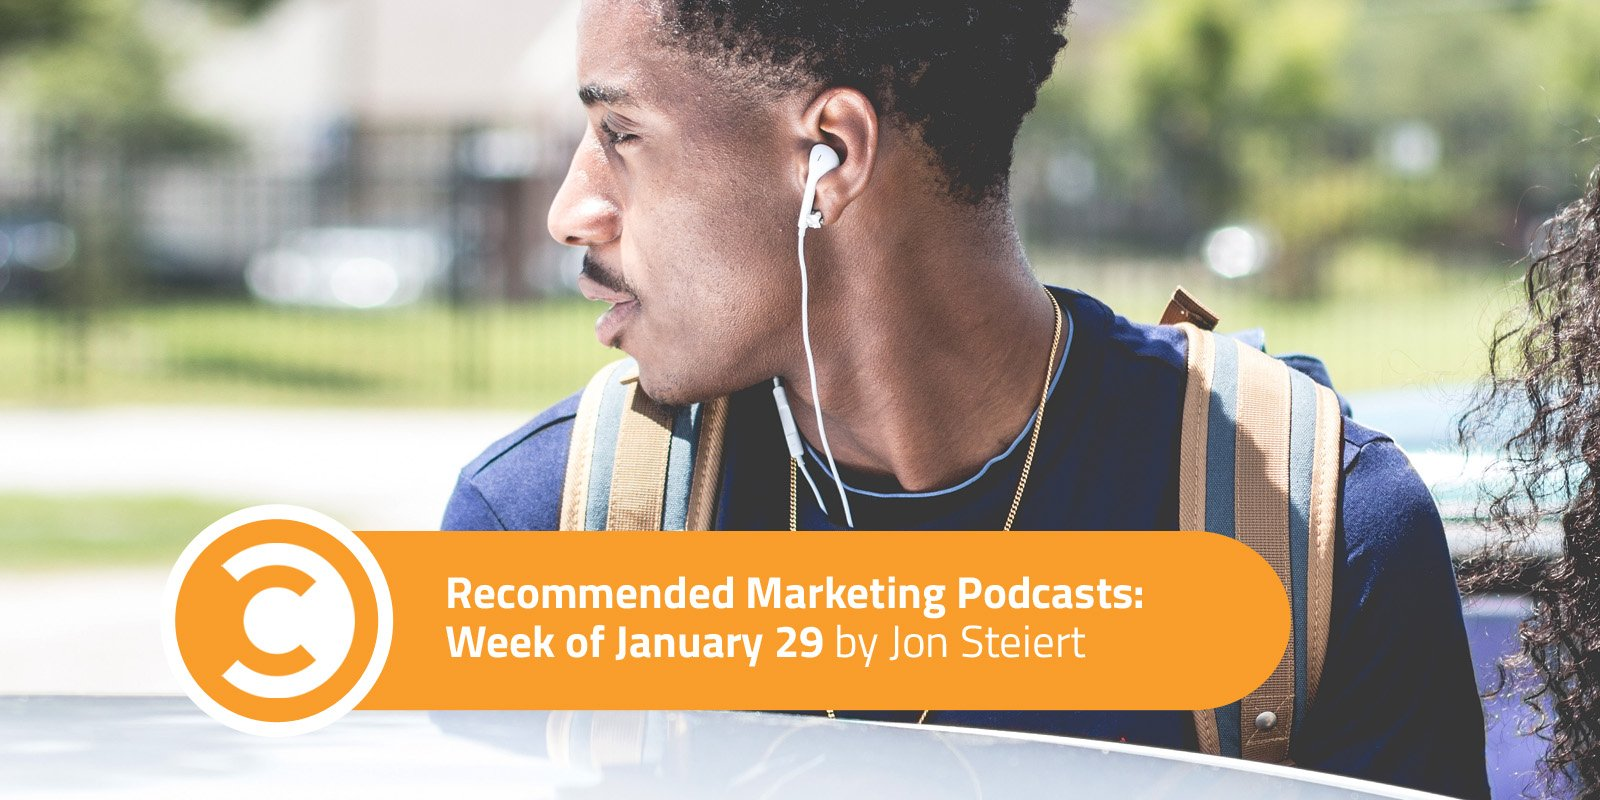 Recommended Marketing Podcasts Week of January 29